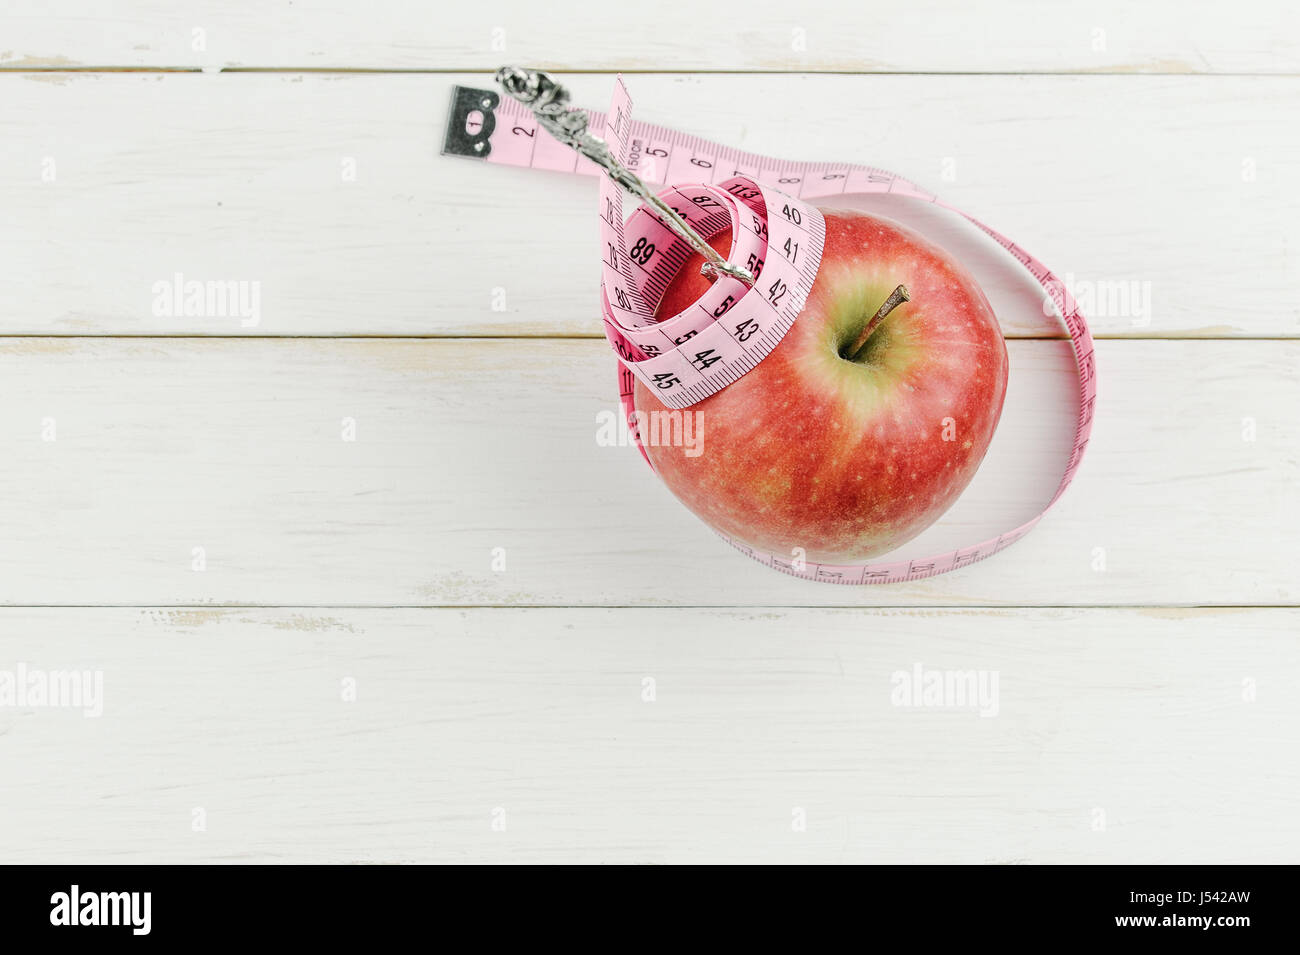 red apple with measuring tape and fork on wooden background, diet concept - Stock Image